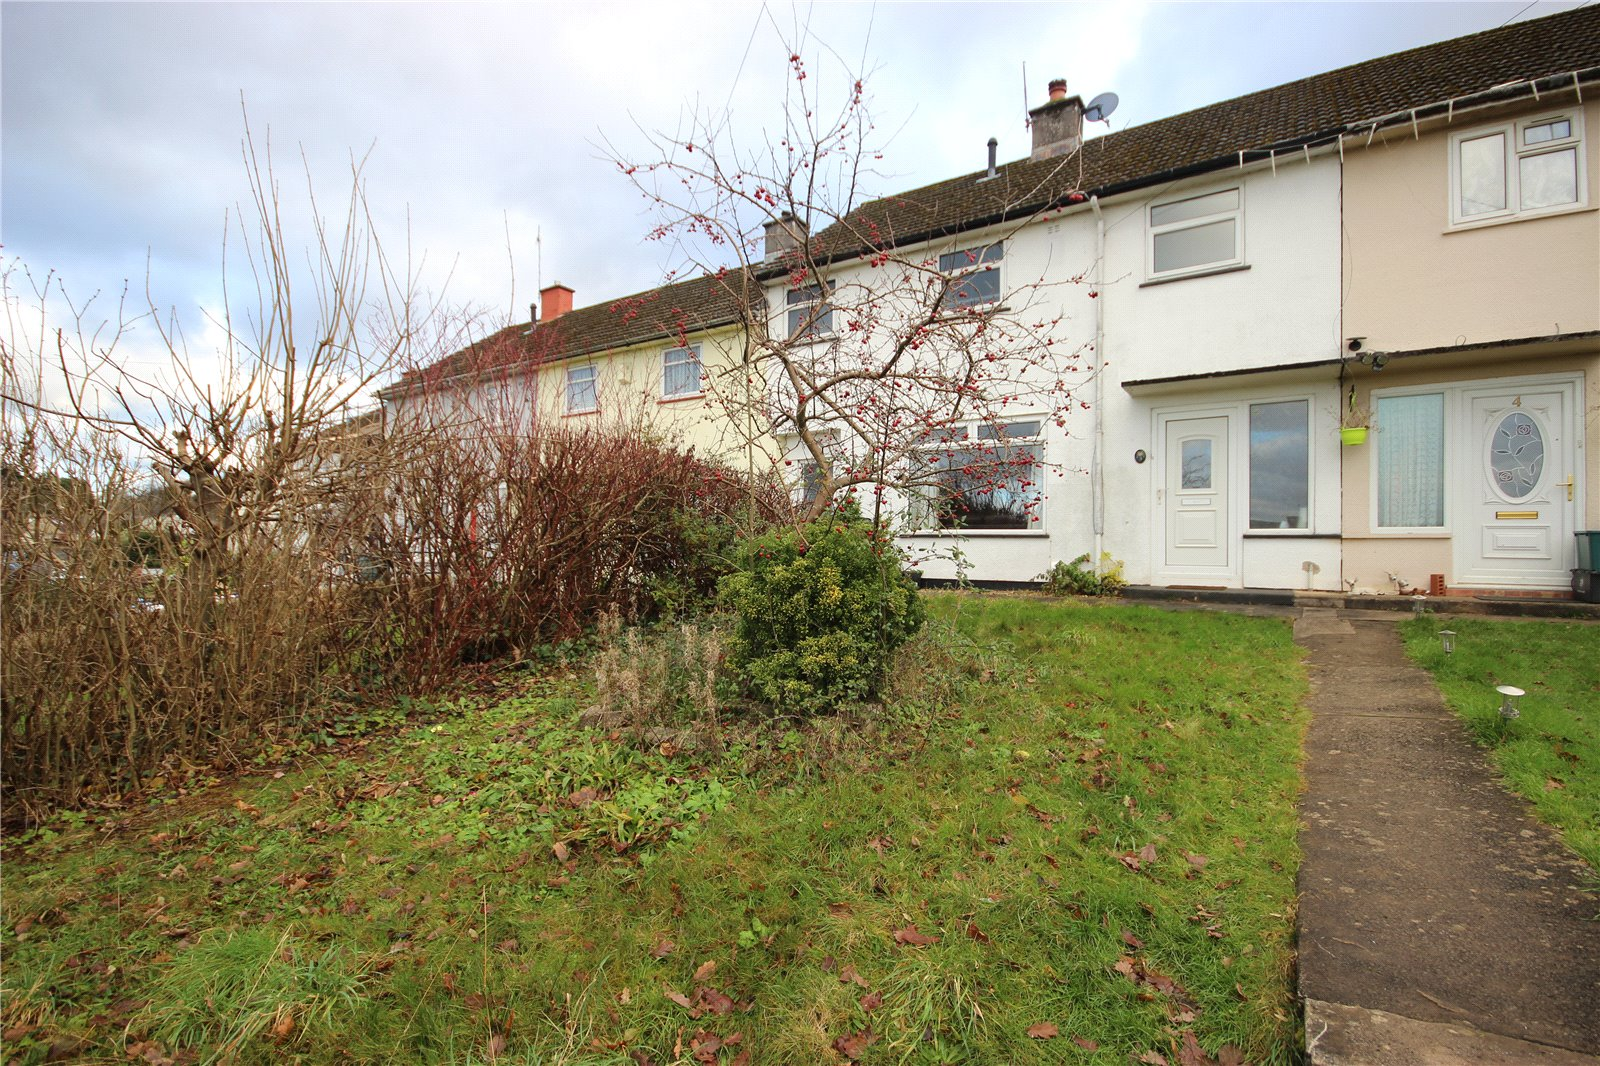 Cj hole westbury on trym 3 bedroom house for sale in for 2m french doors